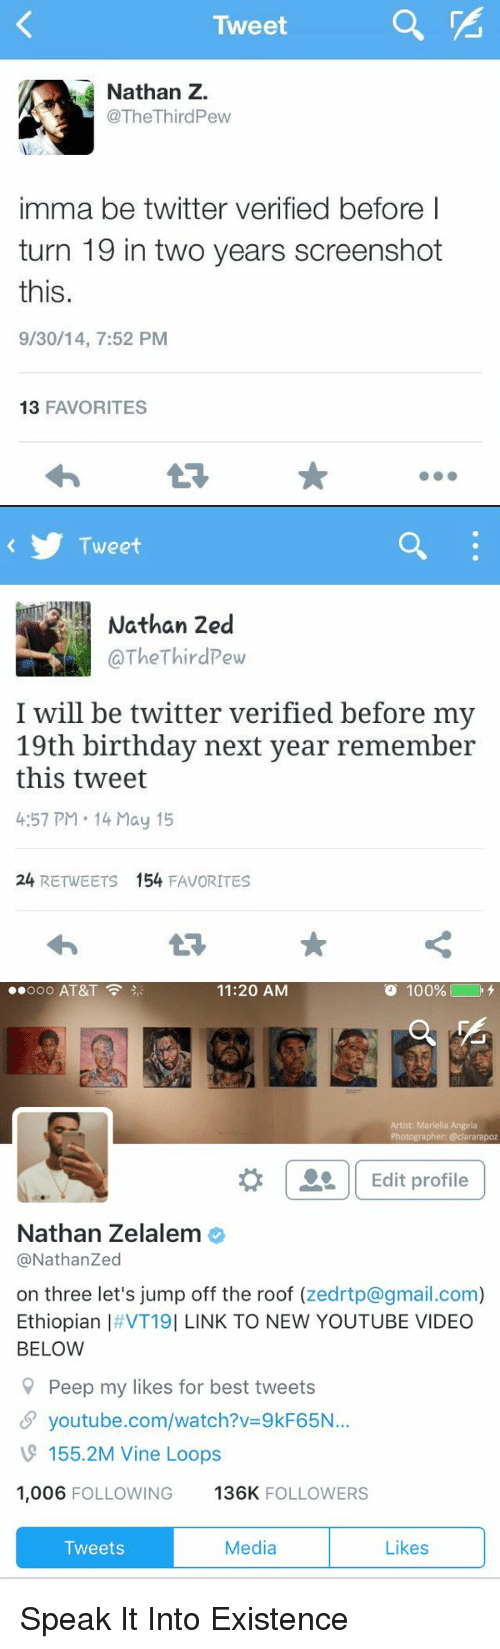 Ethiopians: Tweet  Nathan Z.  @The Third Pew  imma be twitter verified before I  turn 19 in two years screenshot  this.  9/30/14, 7:52 PM  13 FAVORITES   Tweet  Nathan 2ed  I will be twitter verified before my  19th birthday next year remember  this tweet  4:57 PM 14 May 15  24  RETWEETS  154  FAVORITES   ..ooo AT&T  100%  11:20 AM  Artist: Mariella Angela  Photographer: @clararapoz  Edit profile  Nathan Zelalem  @Nathan Zed  on three let's jump off the roof  (zedrtp@gmail.com)  Ethiopian I VT19I LINK TO NEW YOUTUBE VIDEO  BELOW  Peep my likes for best tweets  SP youtube.com/watch?v 9kF65N...  155.2M Inde Loops  1,006 FOLLOWING  136K  FOLLOWERS  Media  Likes  Tweets Speak It Into Existence